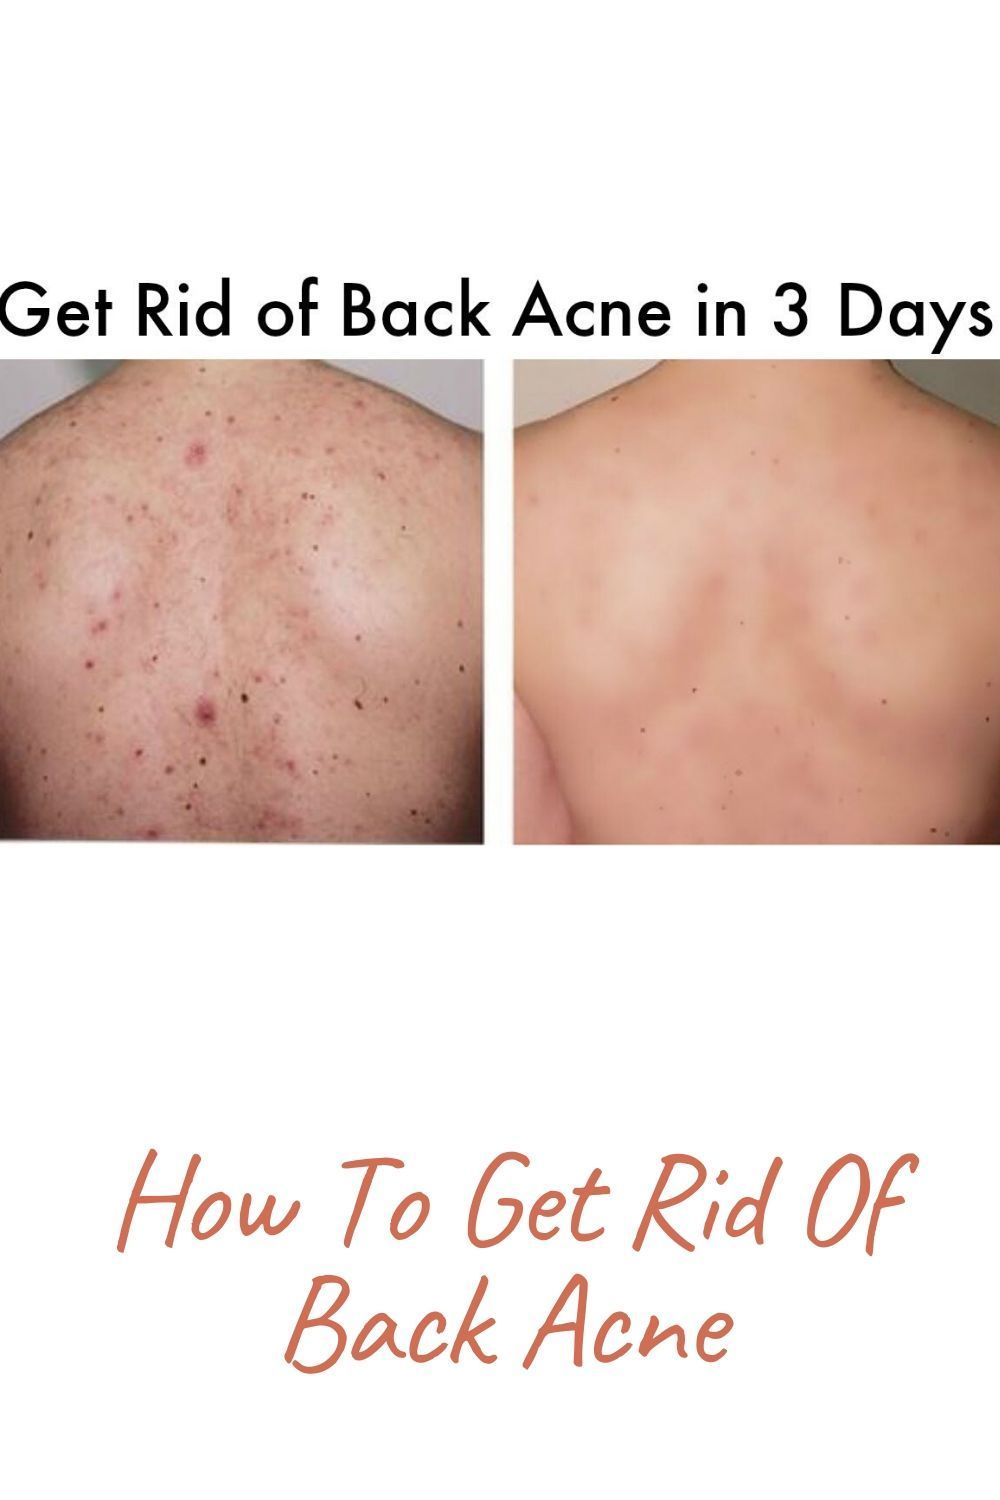 6091686299d33ecfbd391ac0b6fb5207 - How To Get Rid Of Pimple Marks On Back